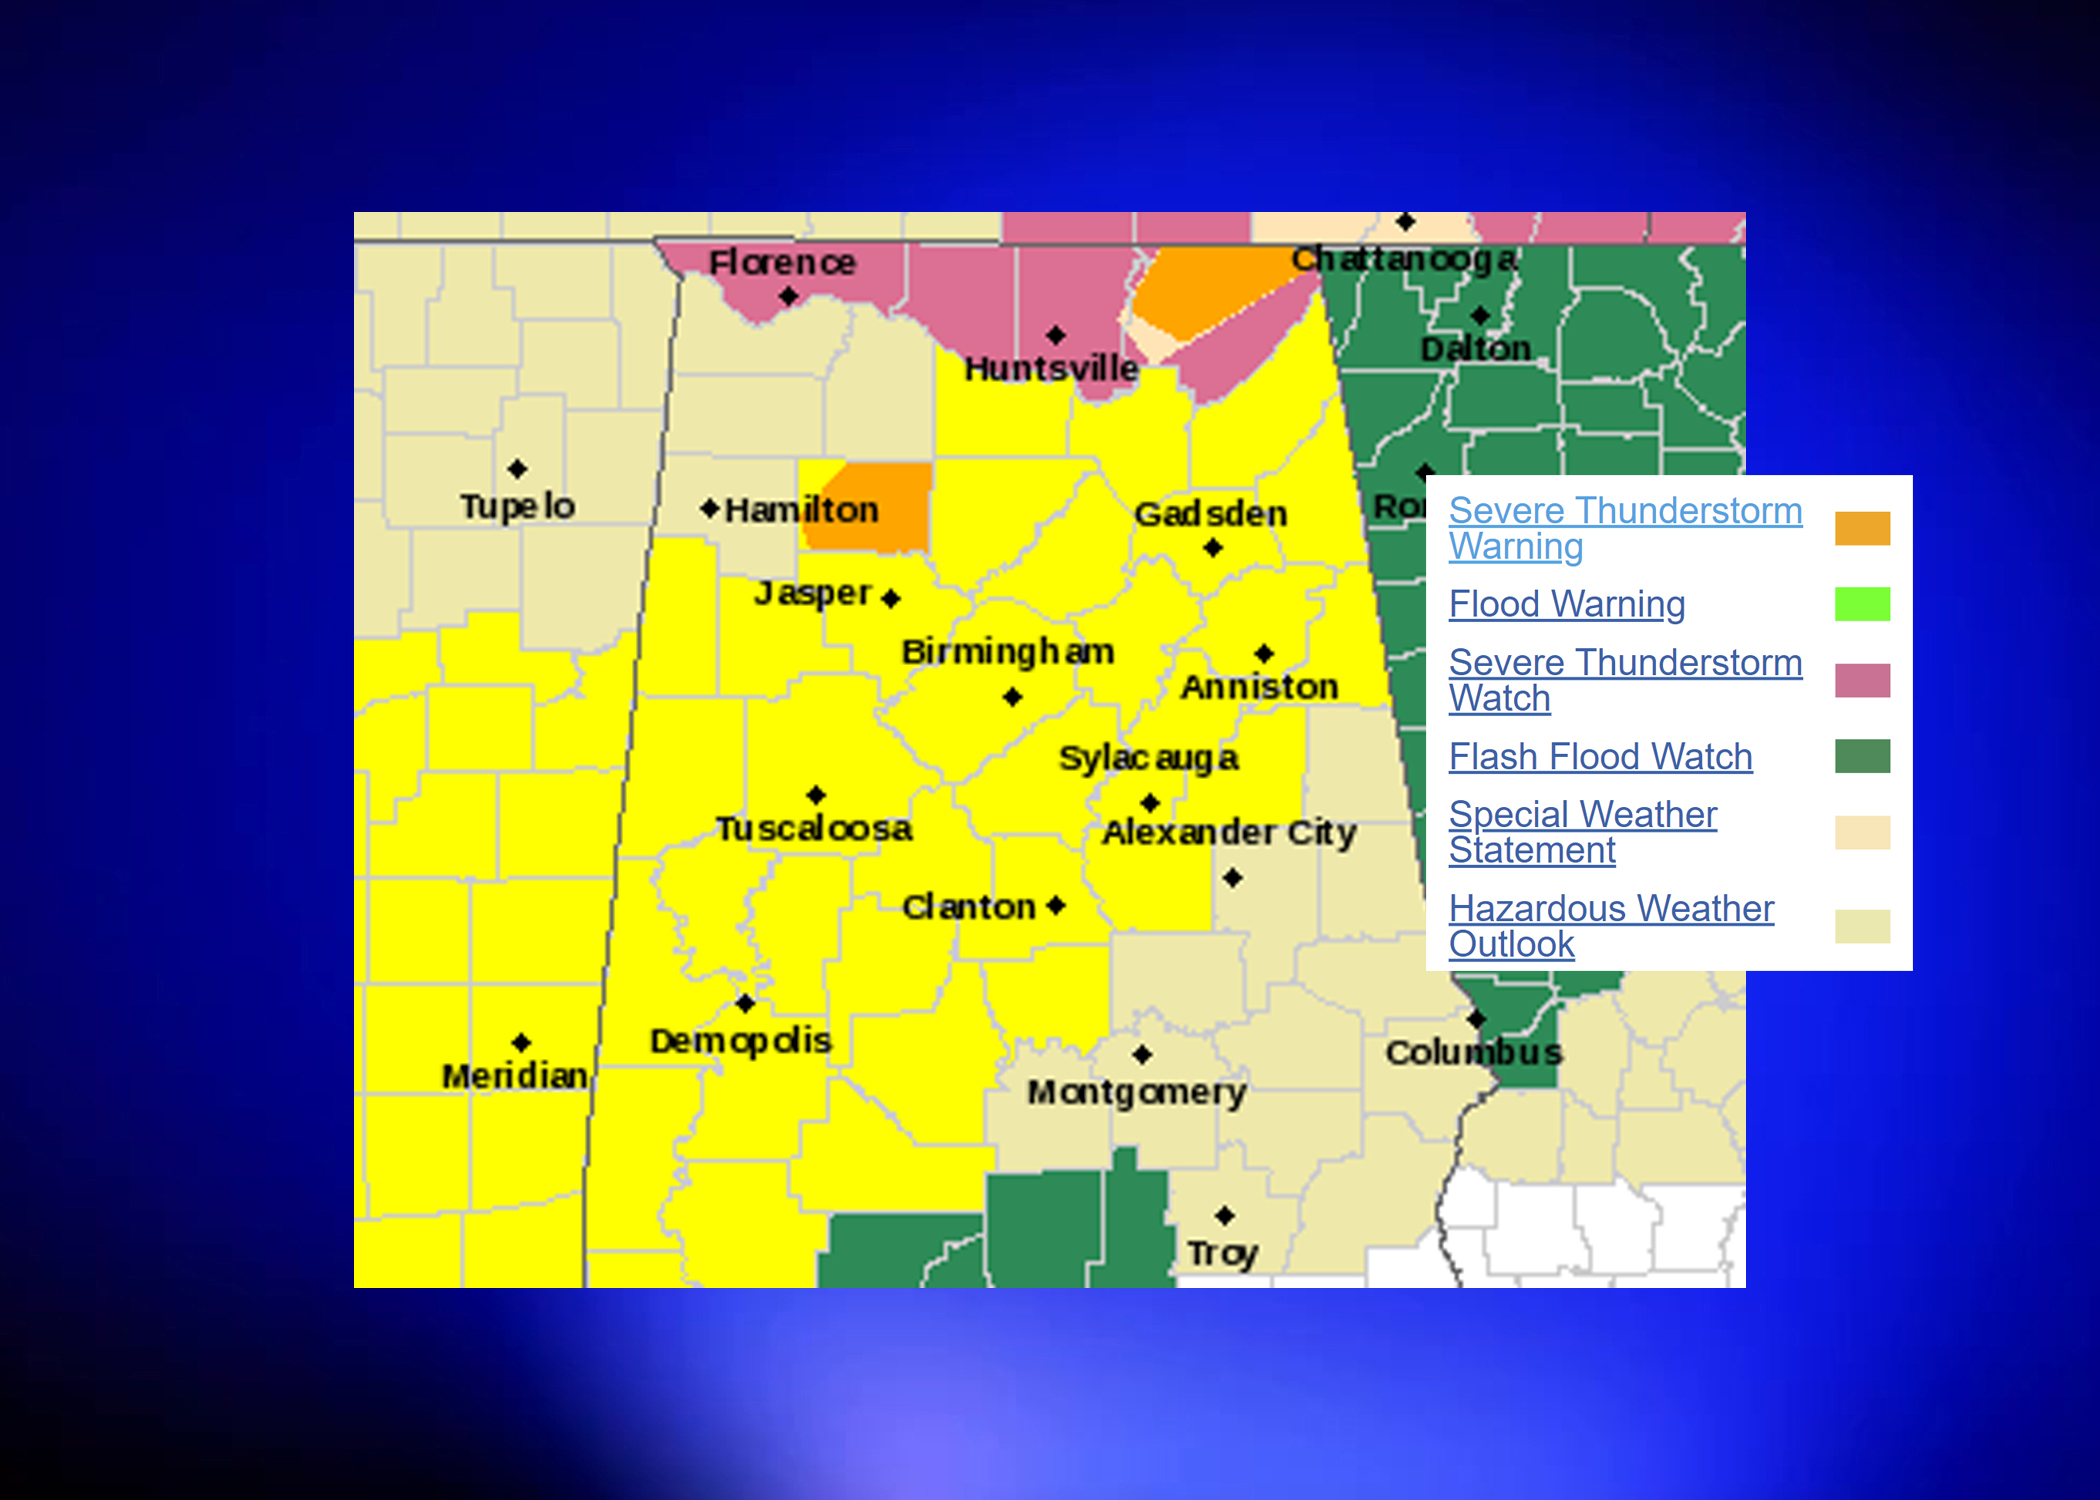 NWS issues Tornado Watch for parts of central Alabama